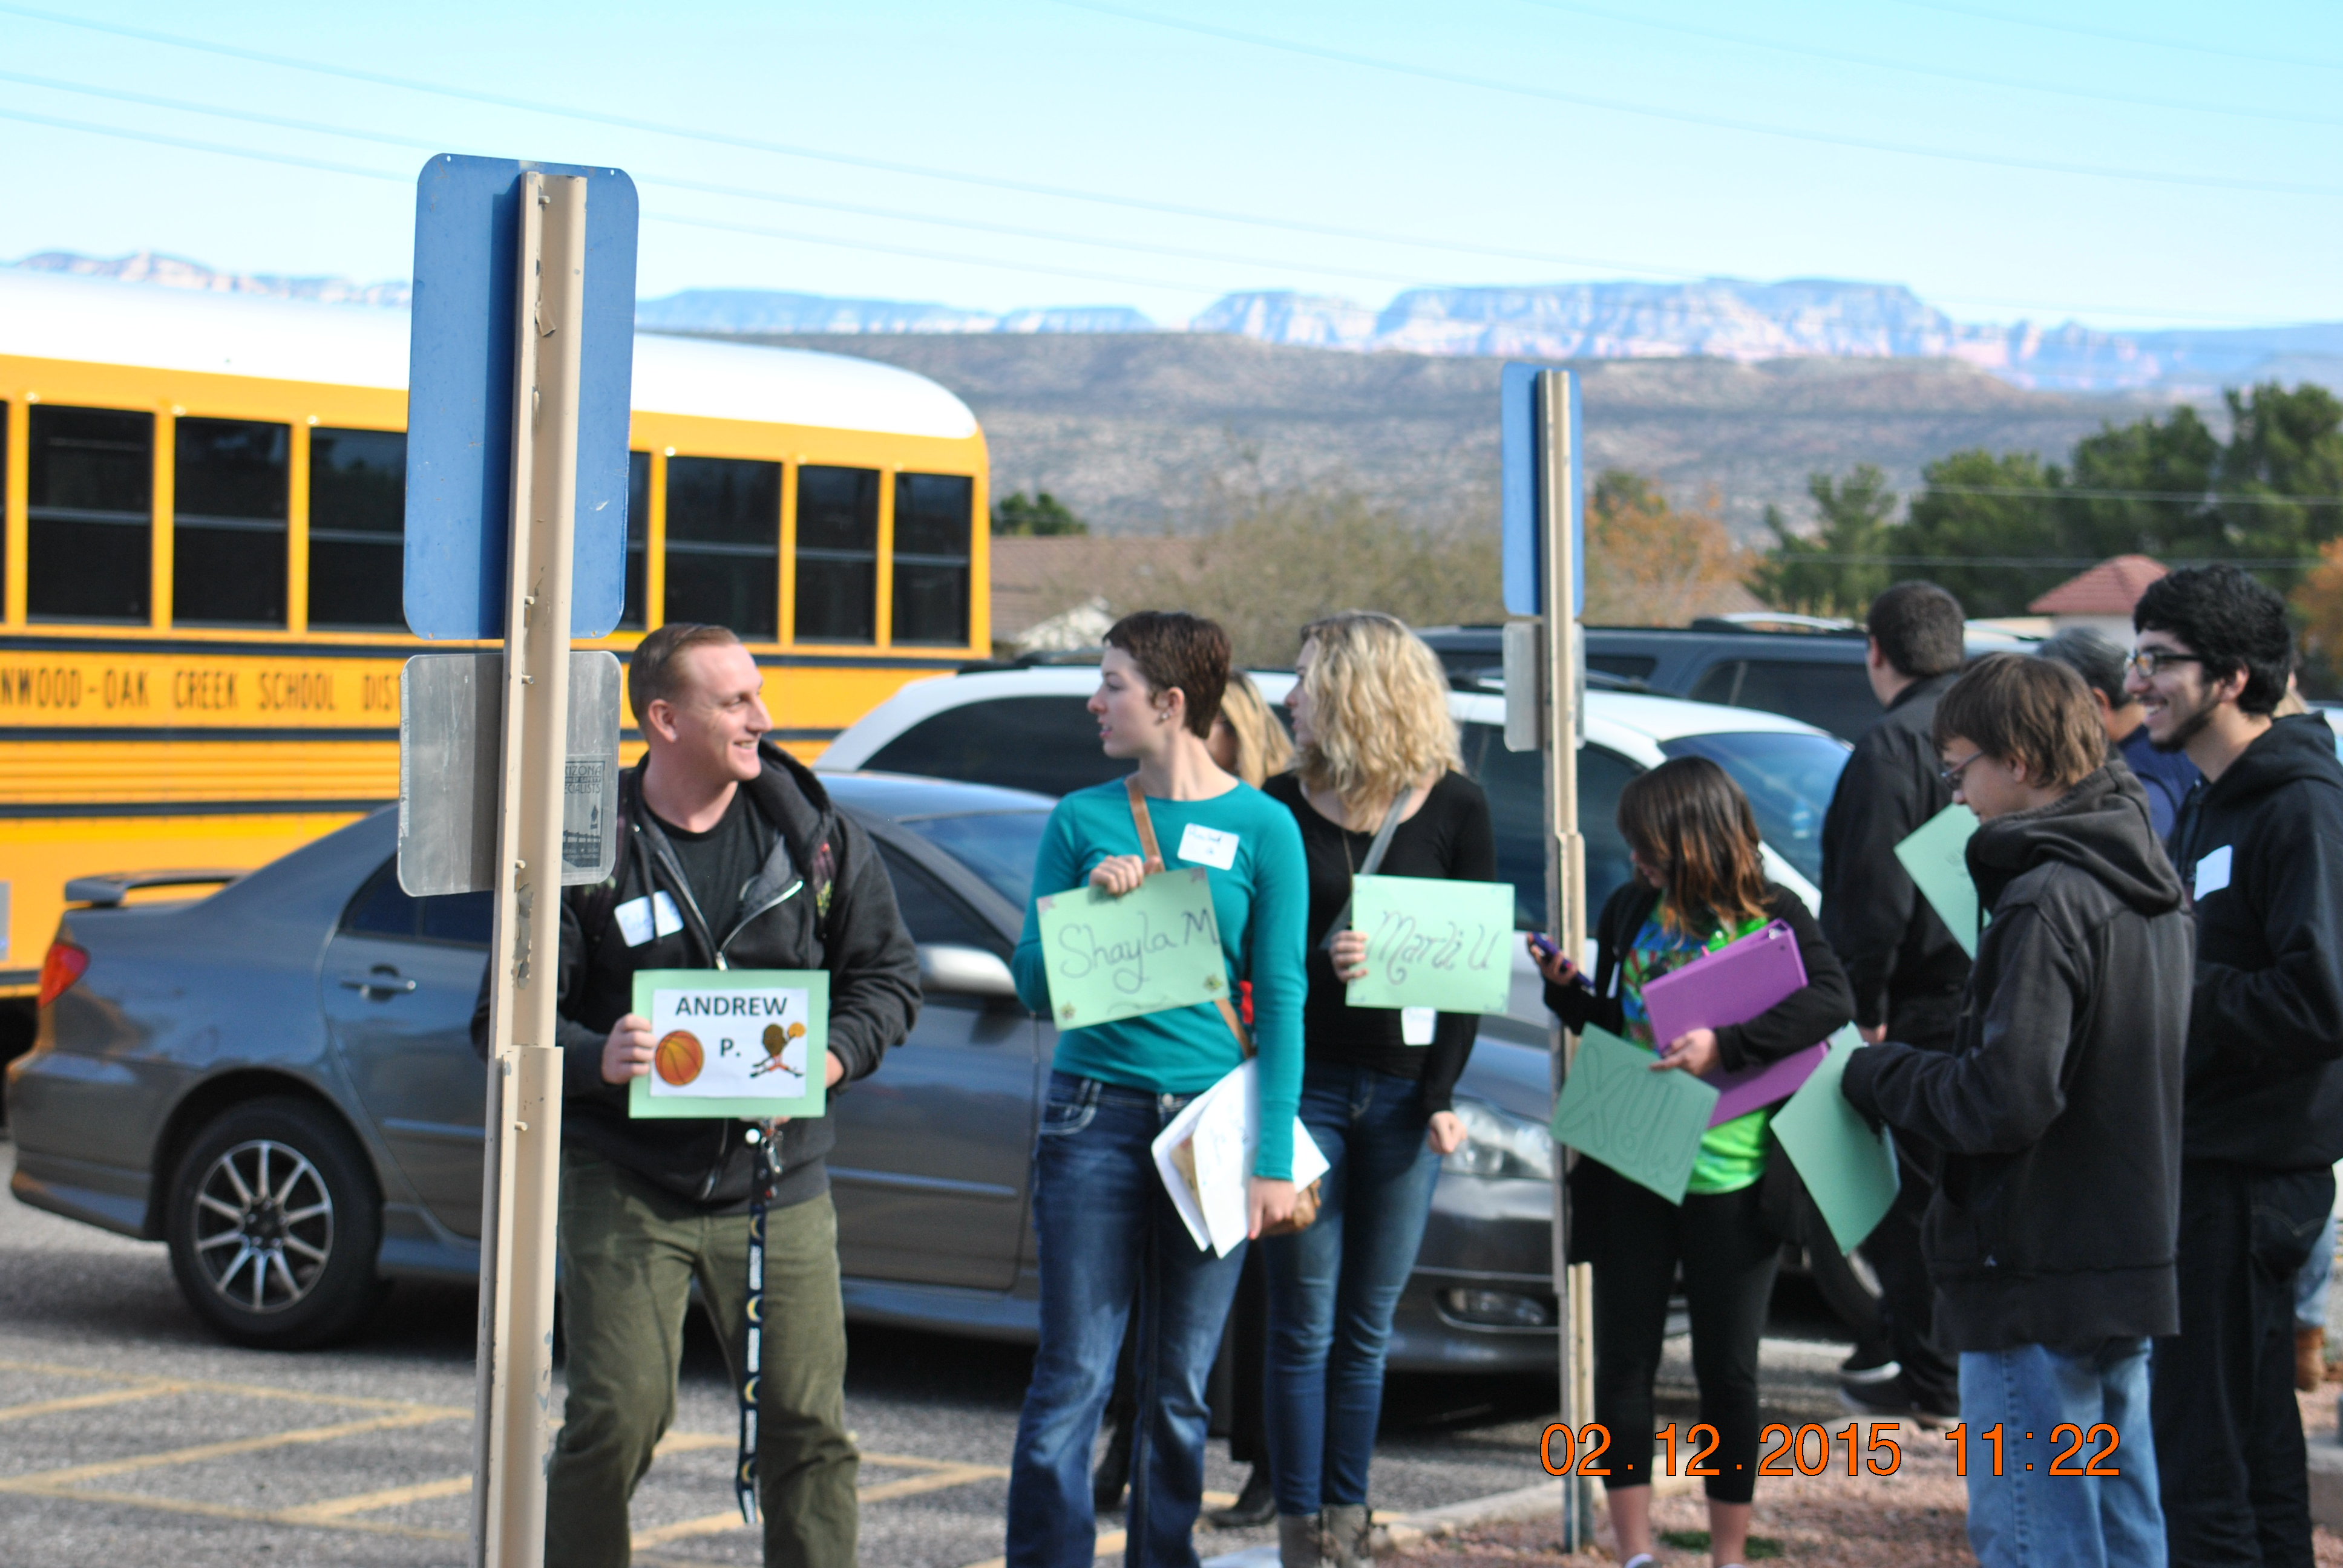 Yavapai College students holding up signs of their pen pal's name, waiting outside for their pen pals to arrive.